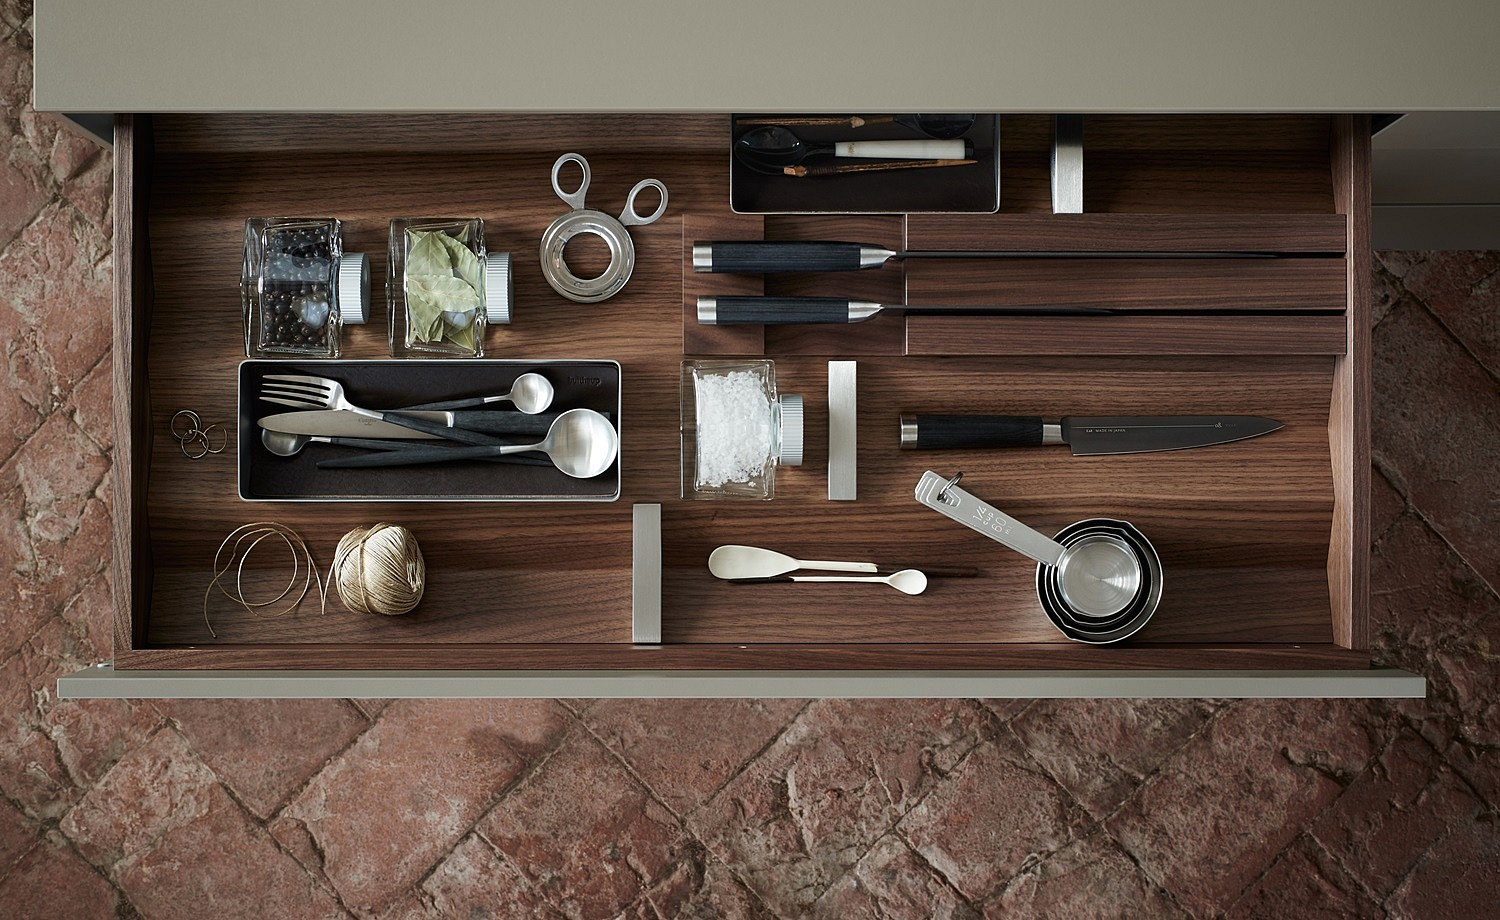 Well organized drawer with dark wood prisms and equipment elements: stainless steel containers, knife block, and stainless steel dividers